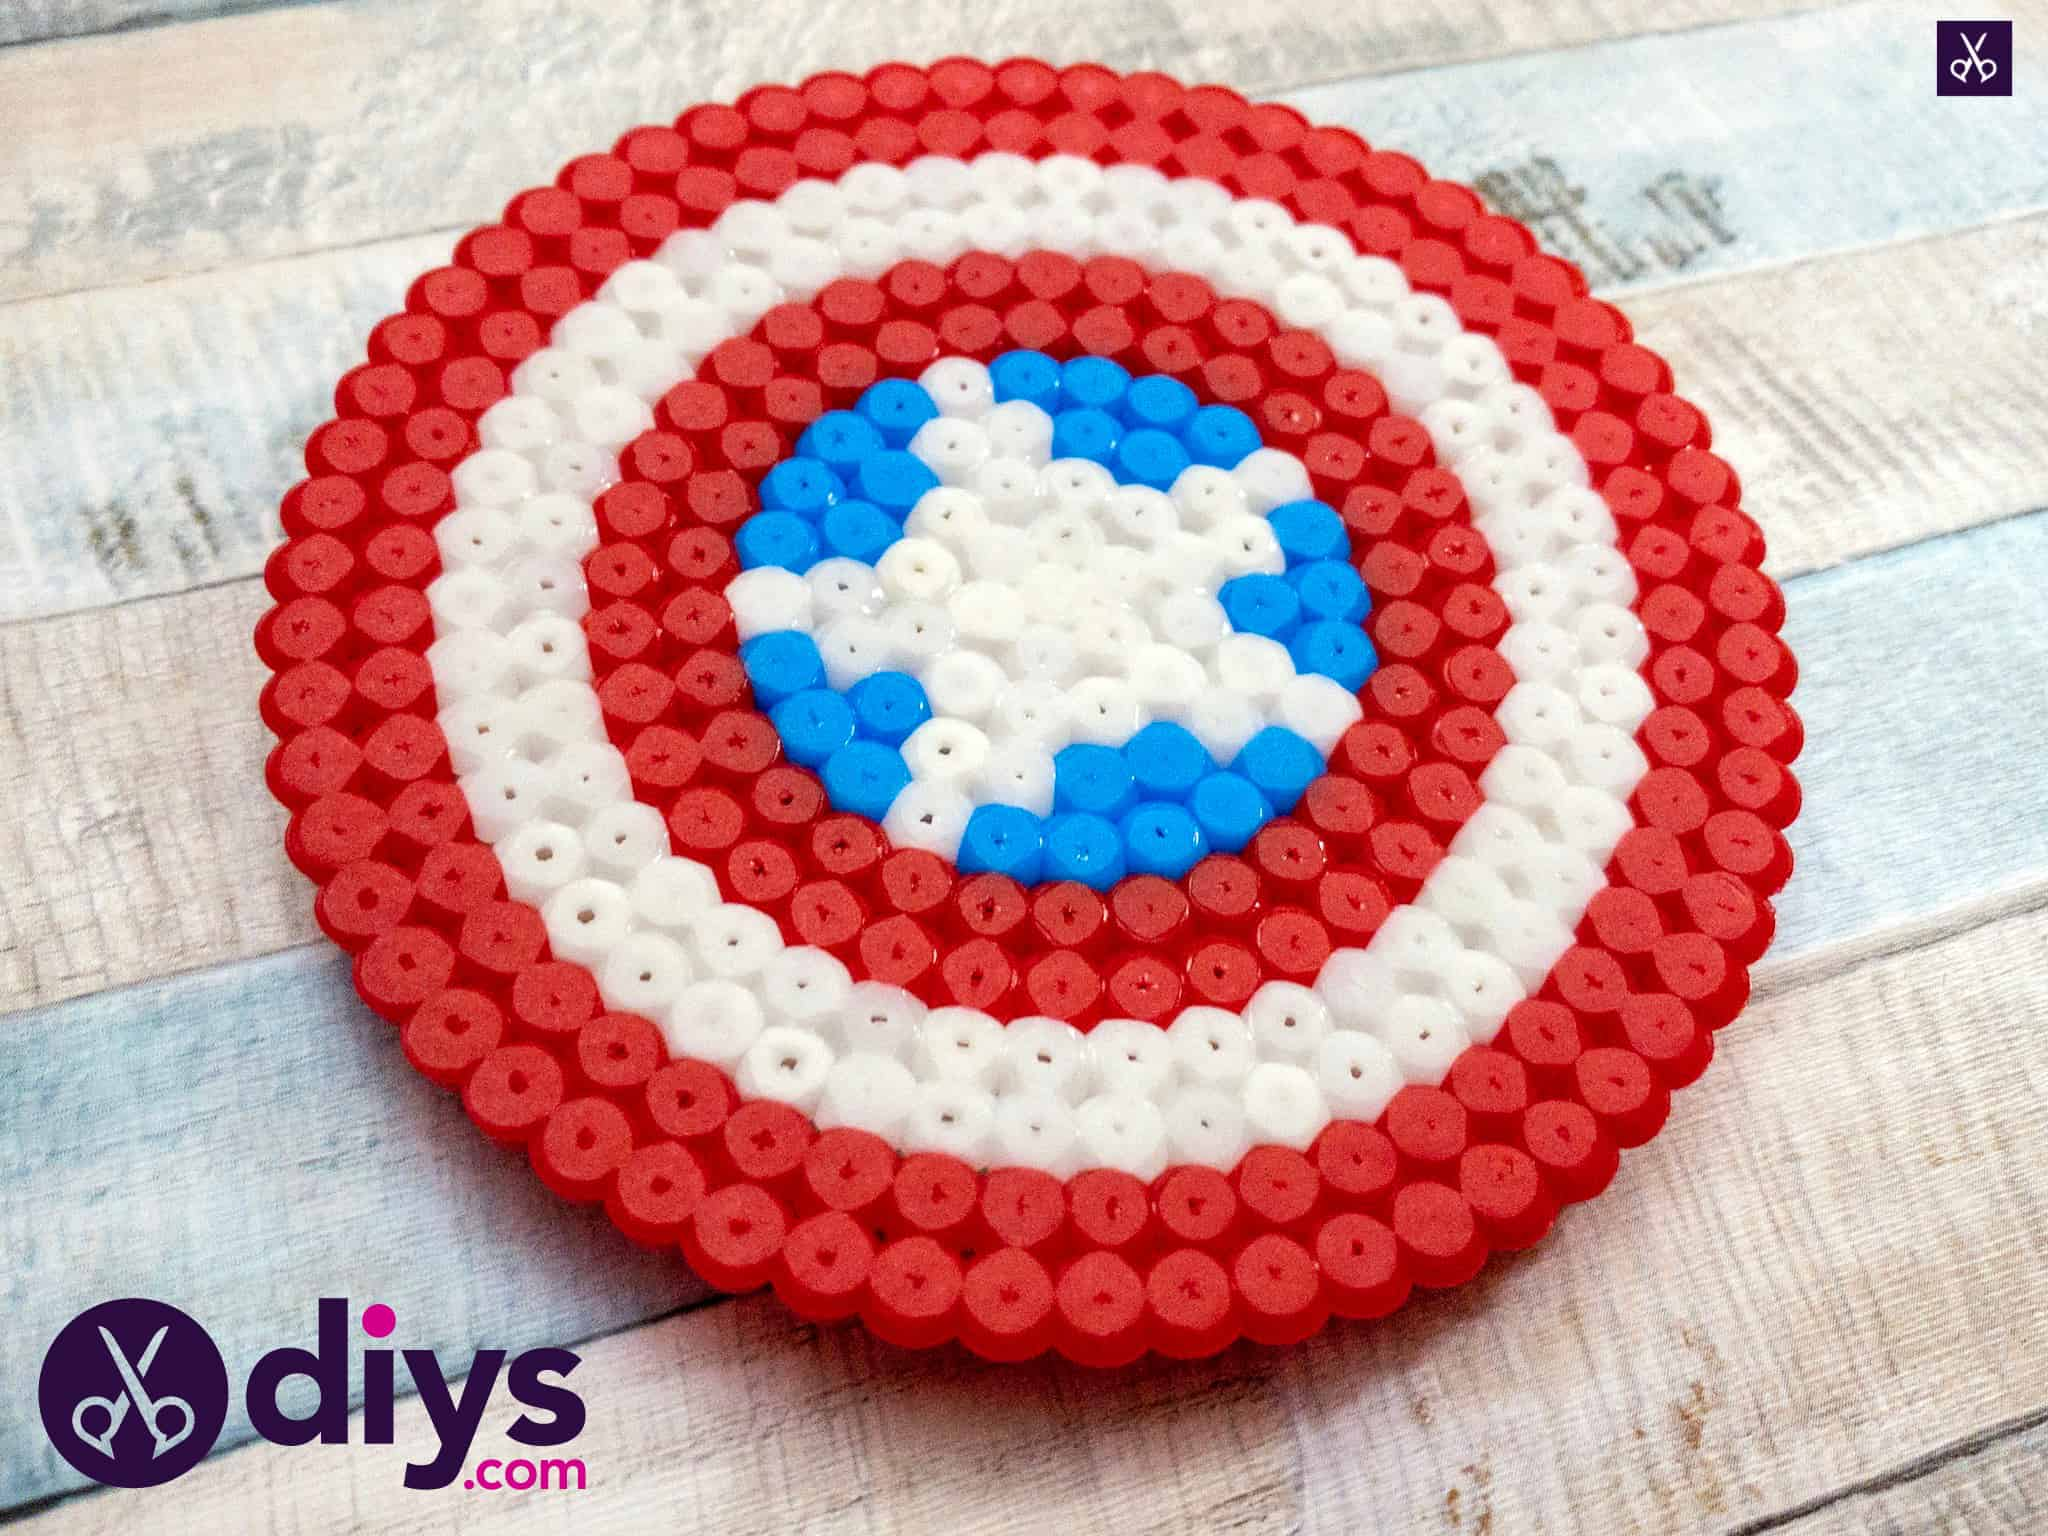 How to make a cool captain america freezer magnet